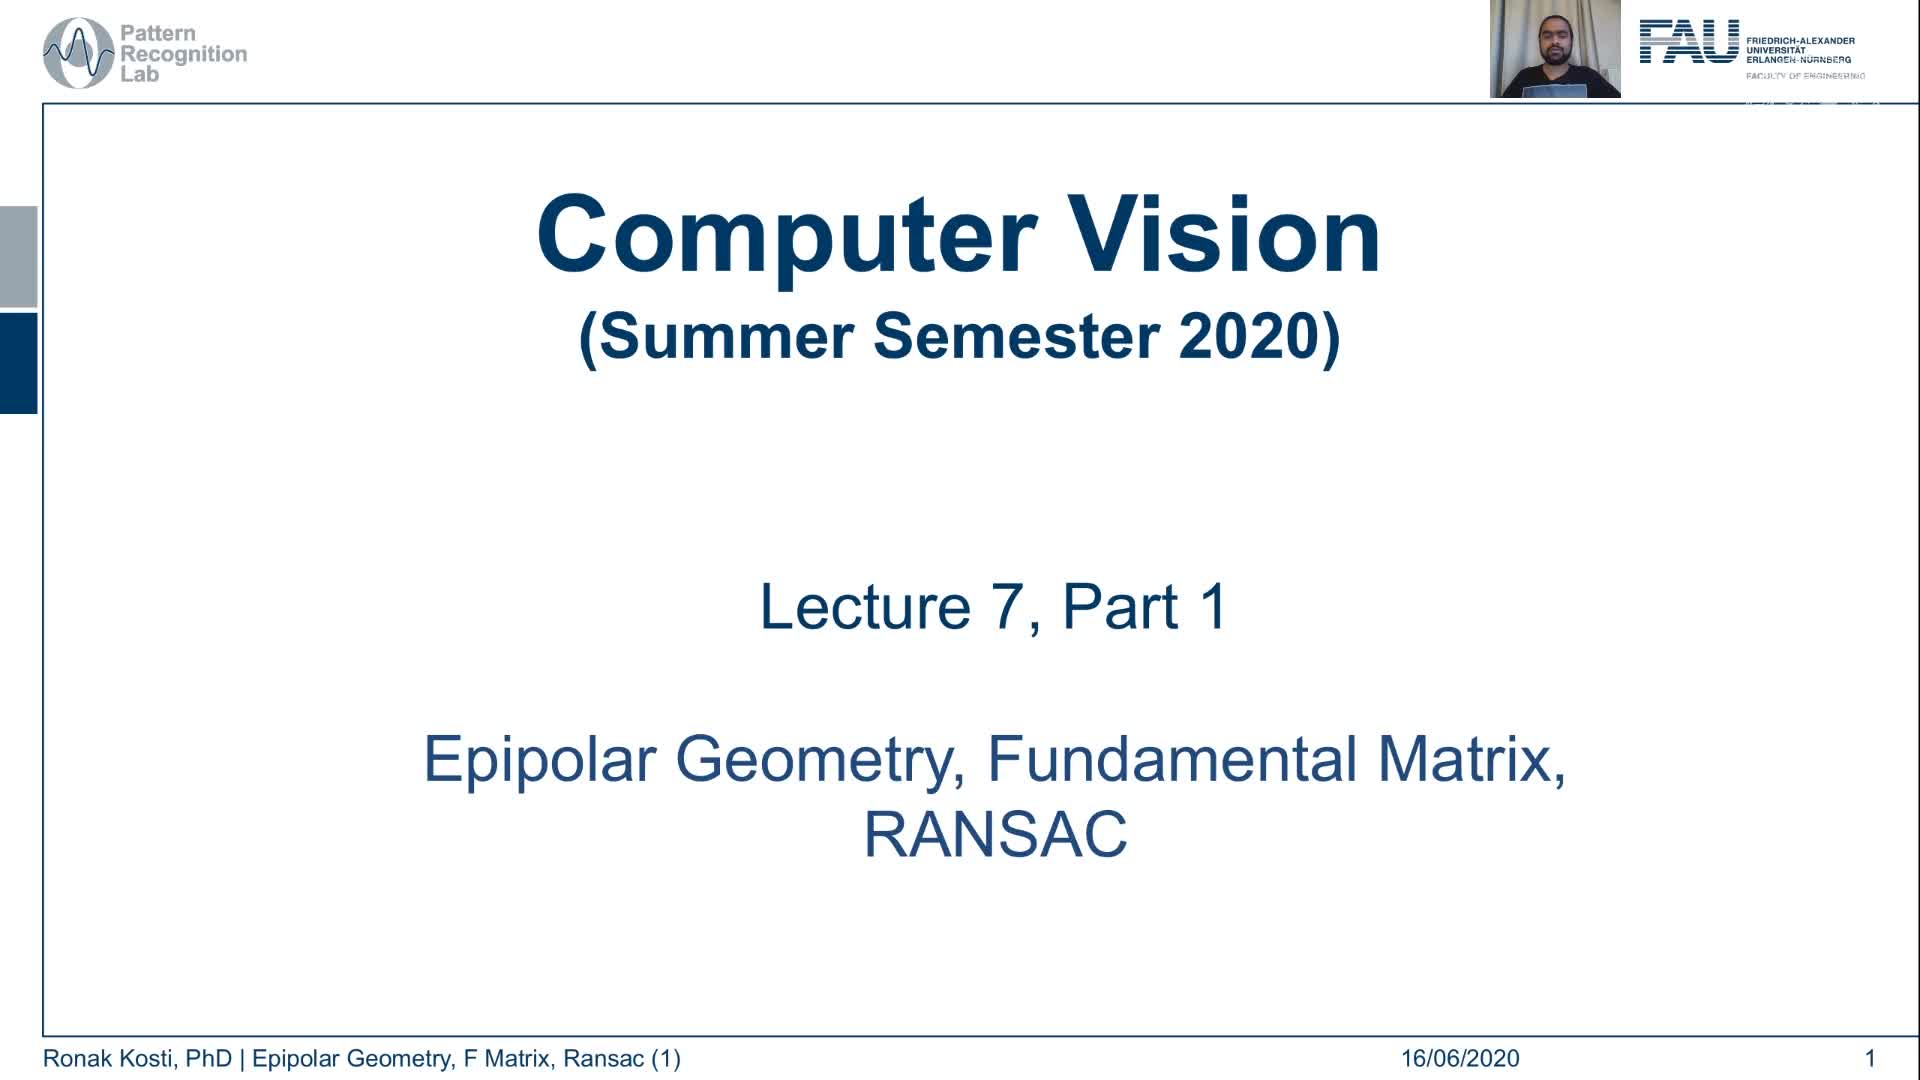 Epipolar Geometry and Ransac (Lecture 7, Part 1) preview image